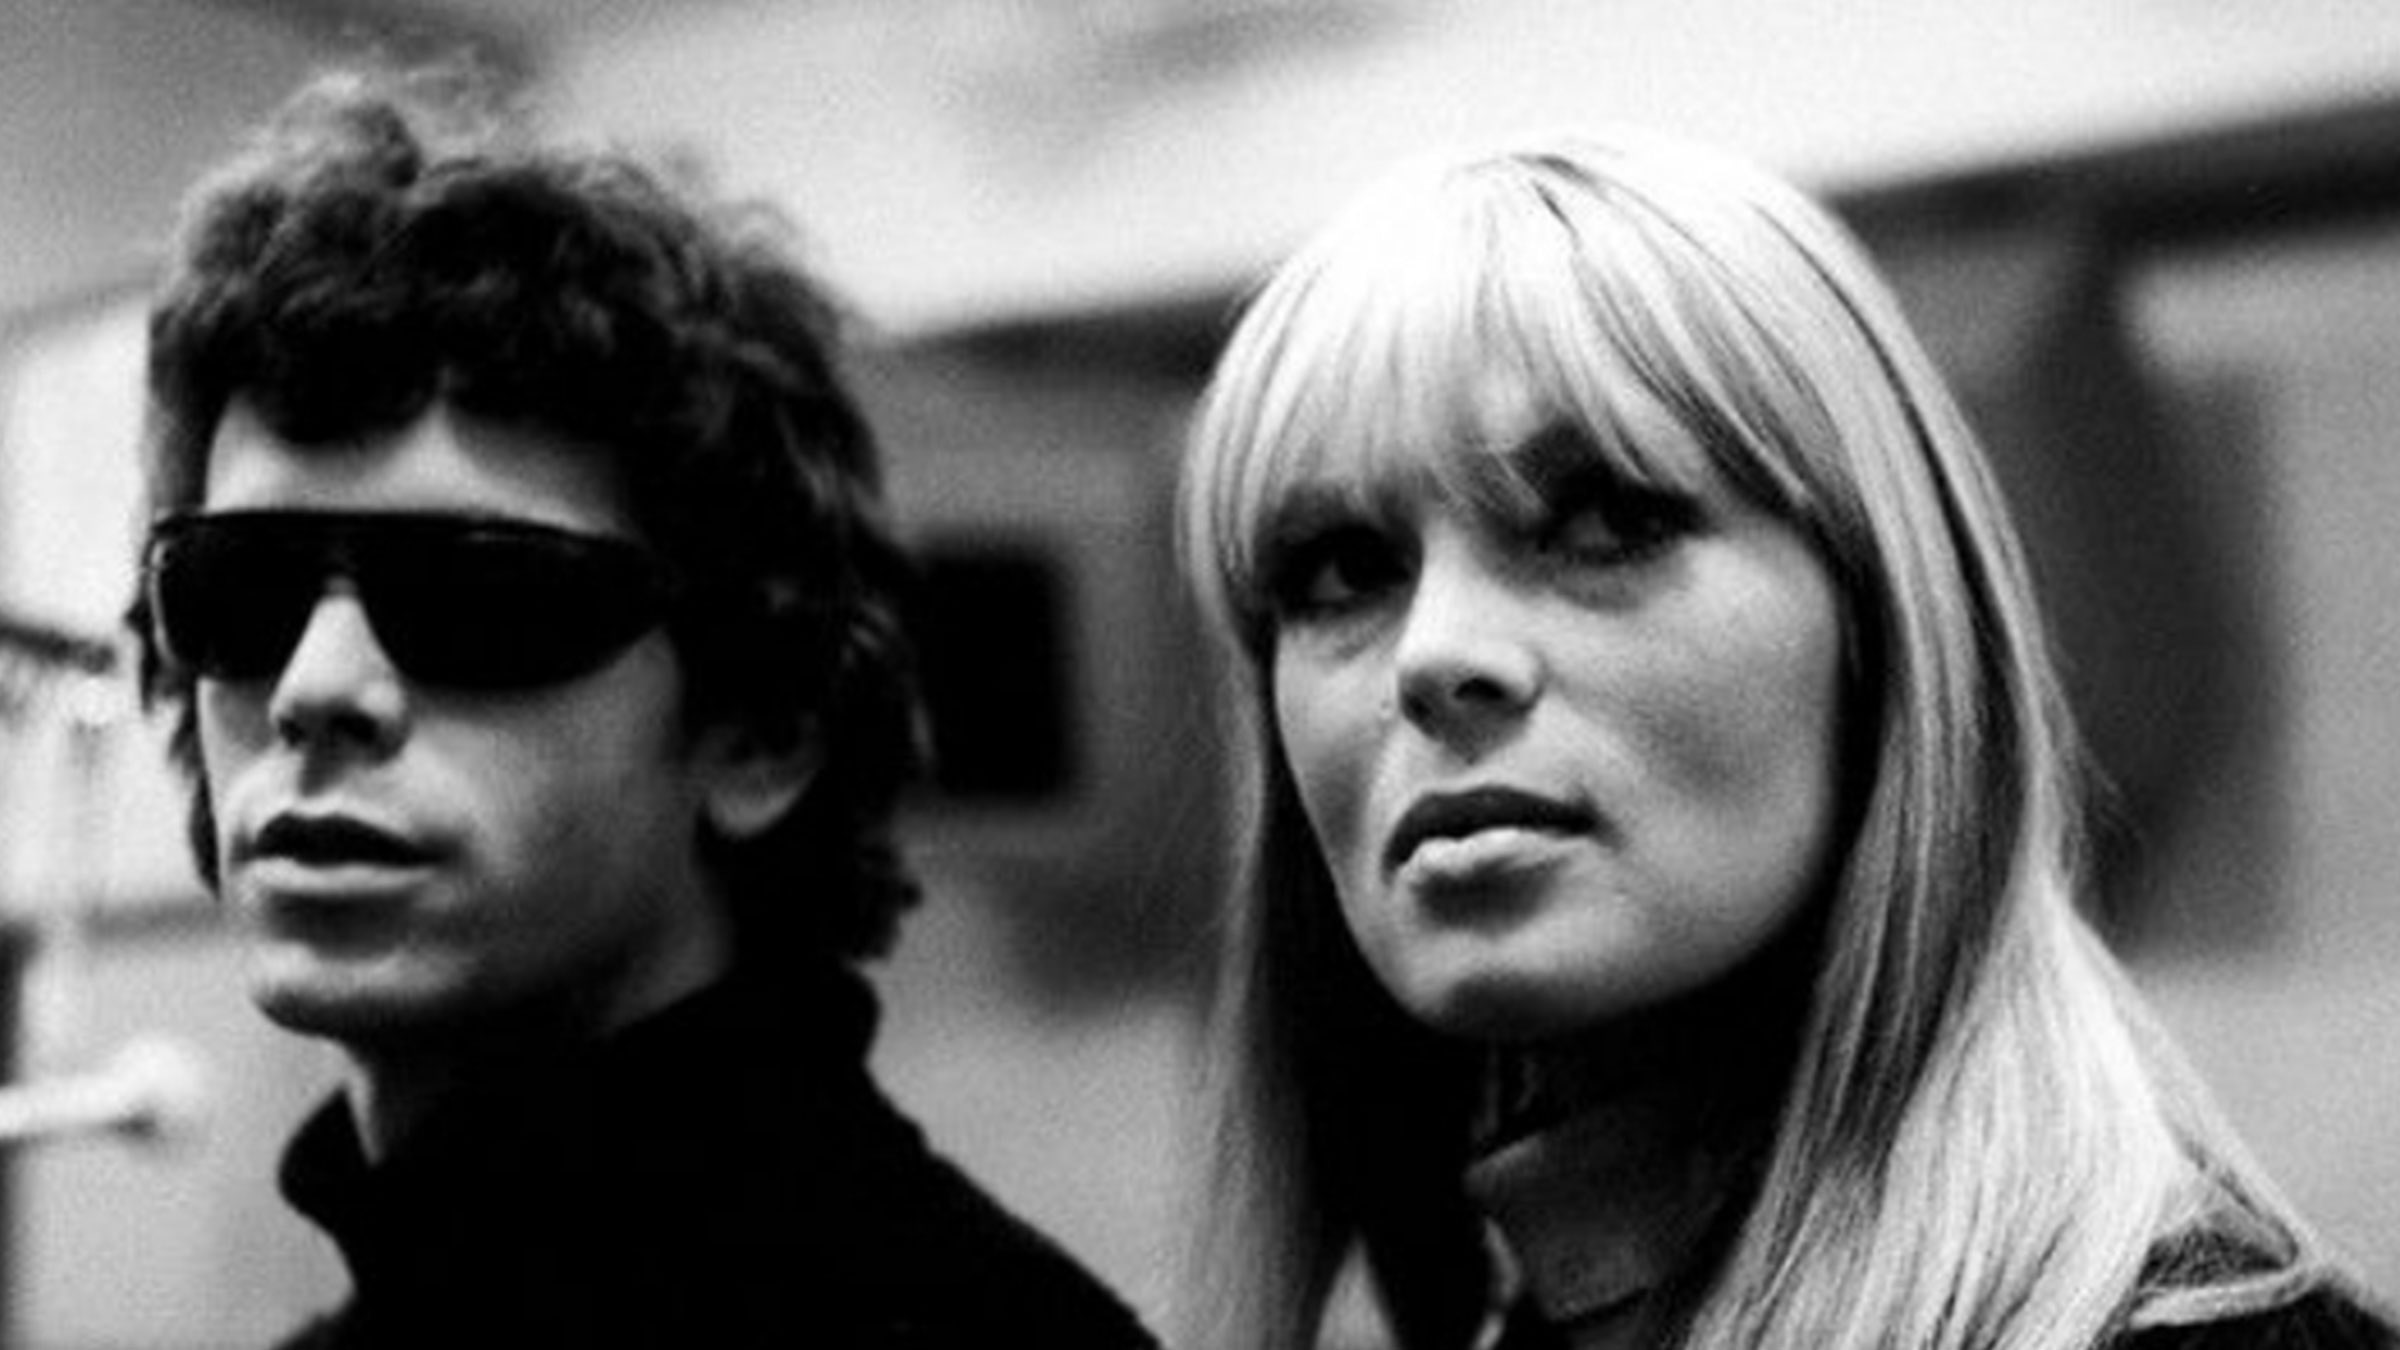 Films from the Underground <br/>Andy Warhol + Lou Reed